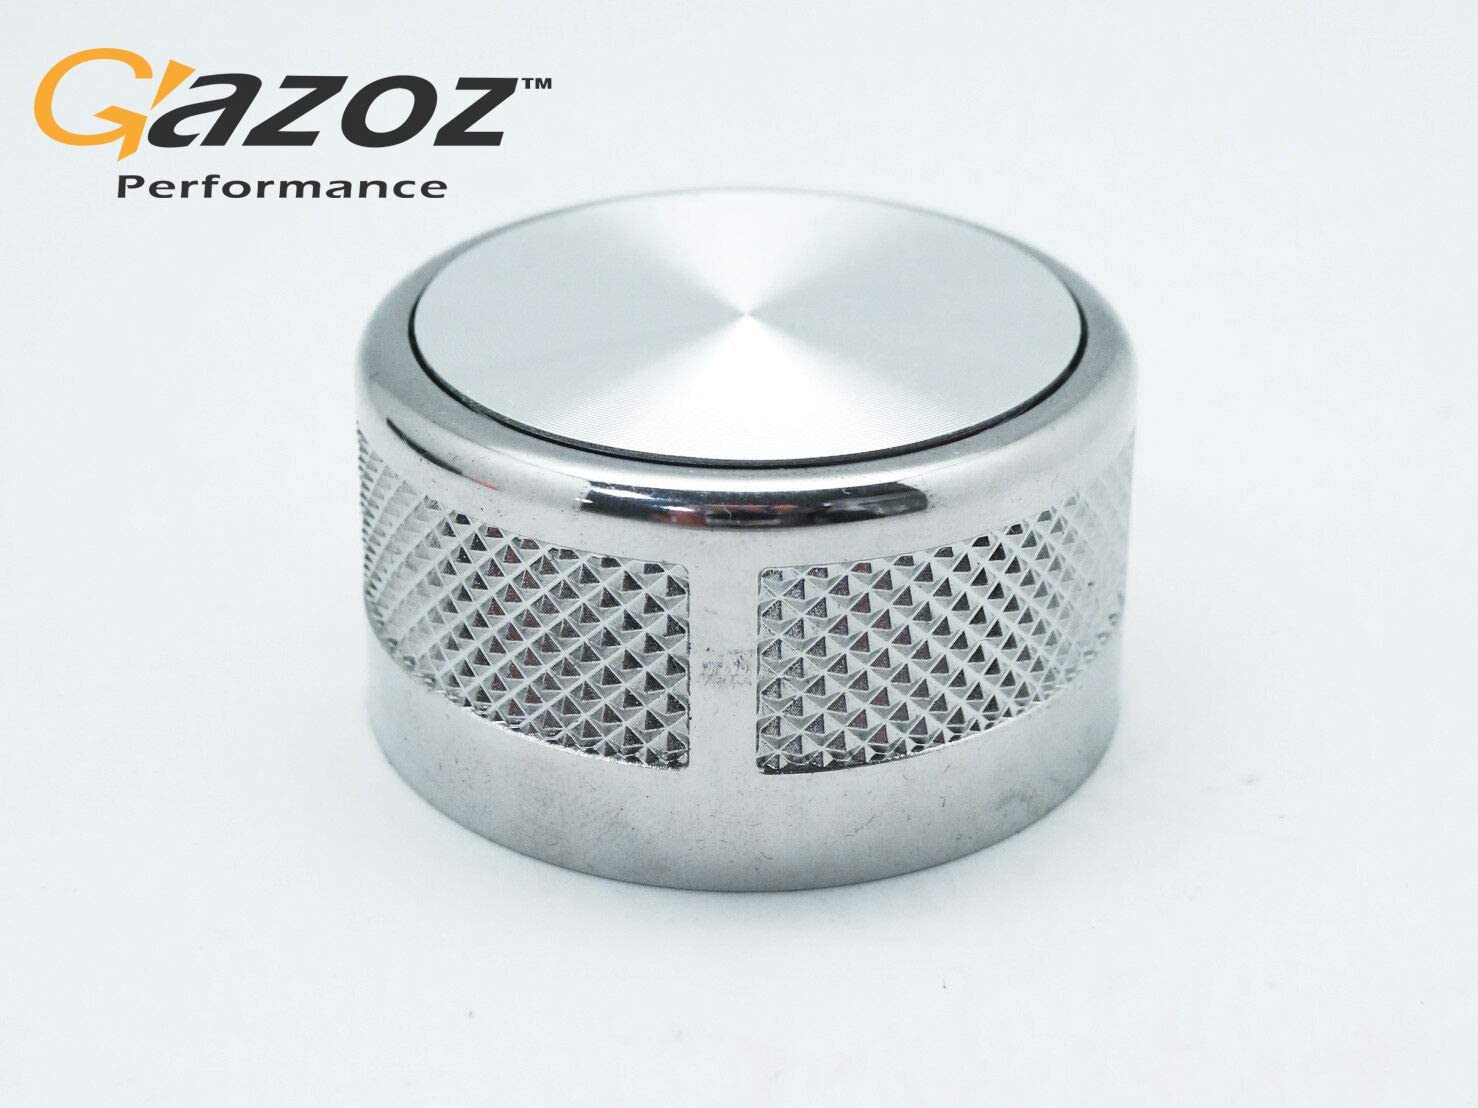 GAZOZ PERFORMANCE Autobiography Style Rotary Gear Shift Selector Knob Chrome for Range Rover L405 2011-2016